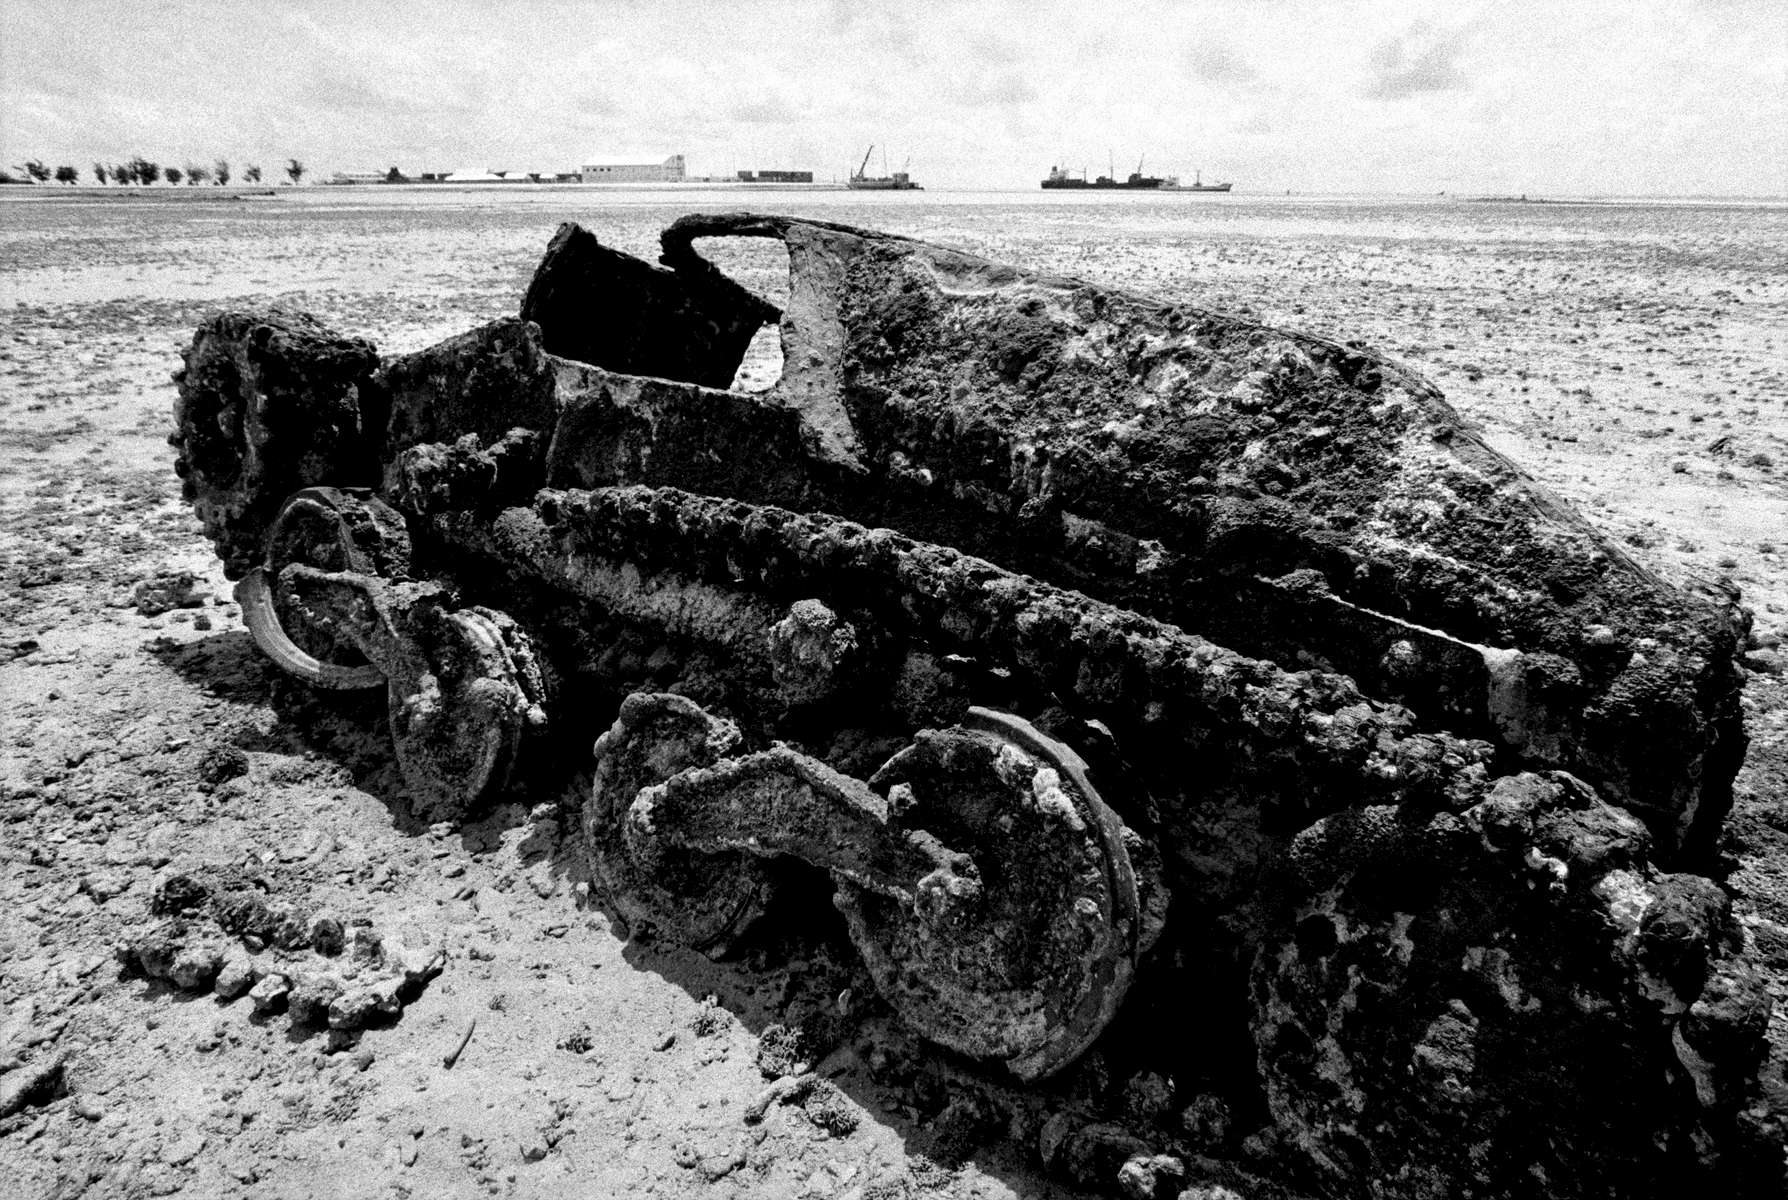 Low tide remnant of the WWII Battle of Tarawa, Republic of Kiribati 2001